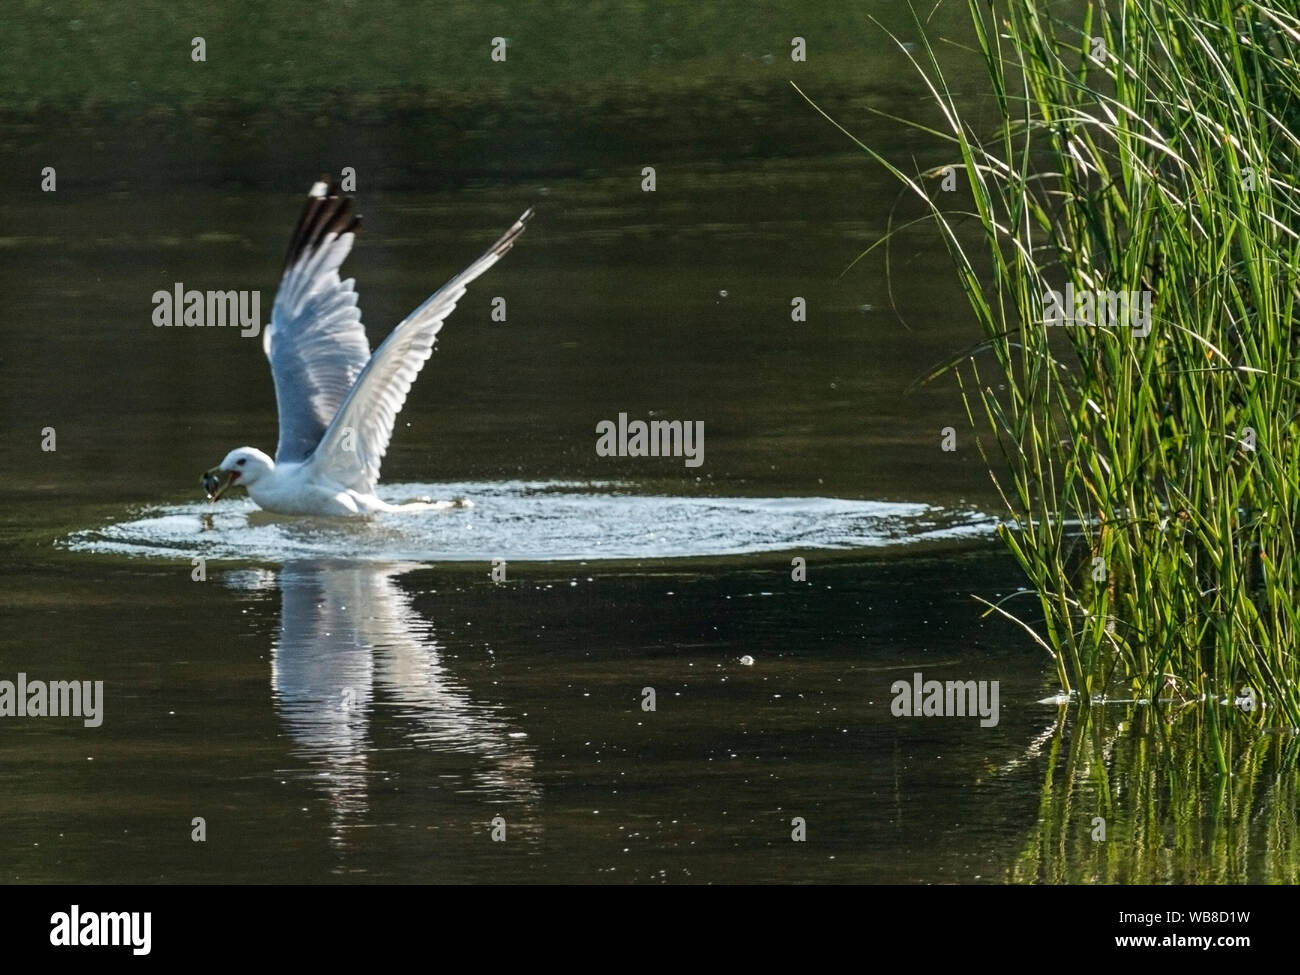 A seagull finds a clam in a creek and is about to fly out of the water with it. Stock Photo